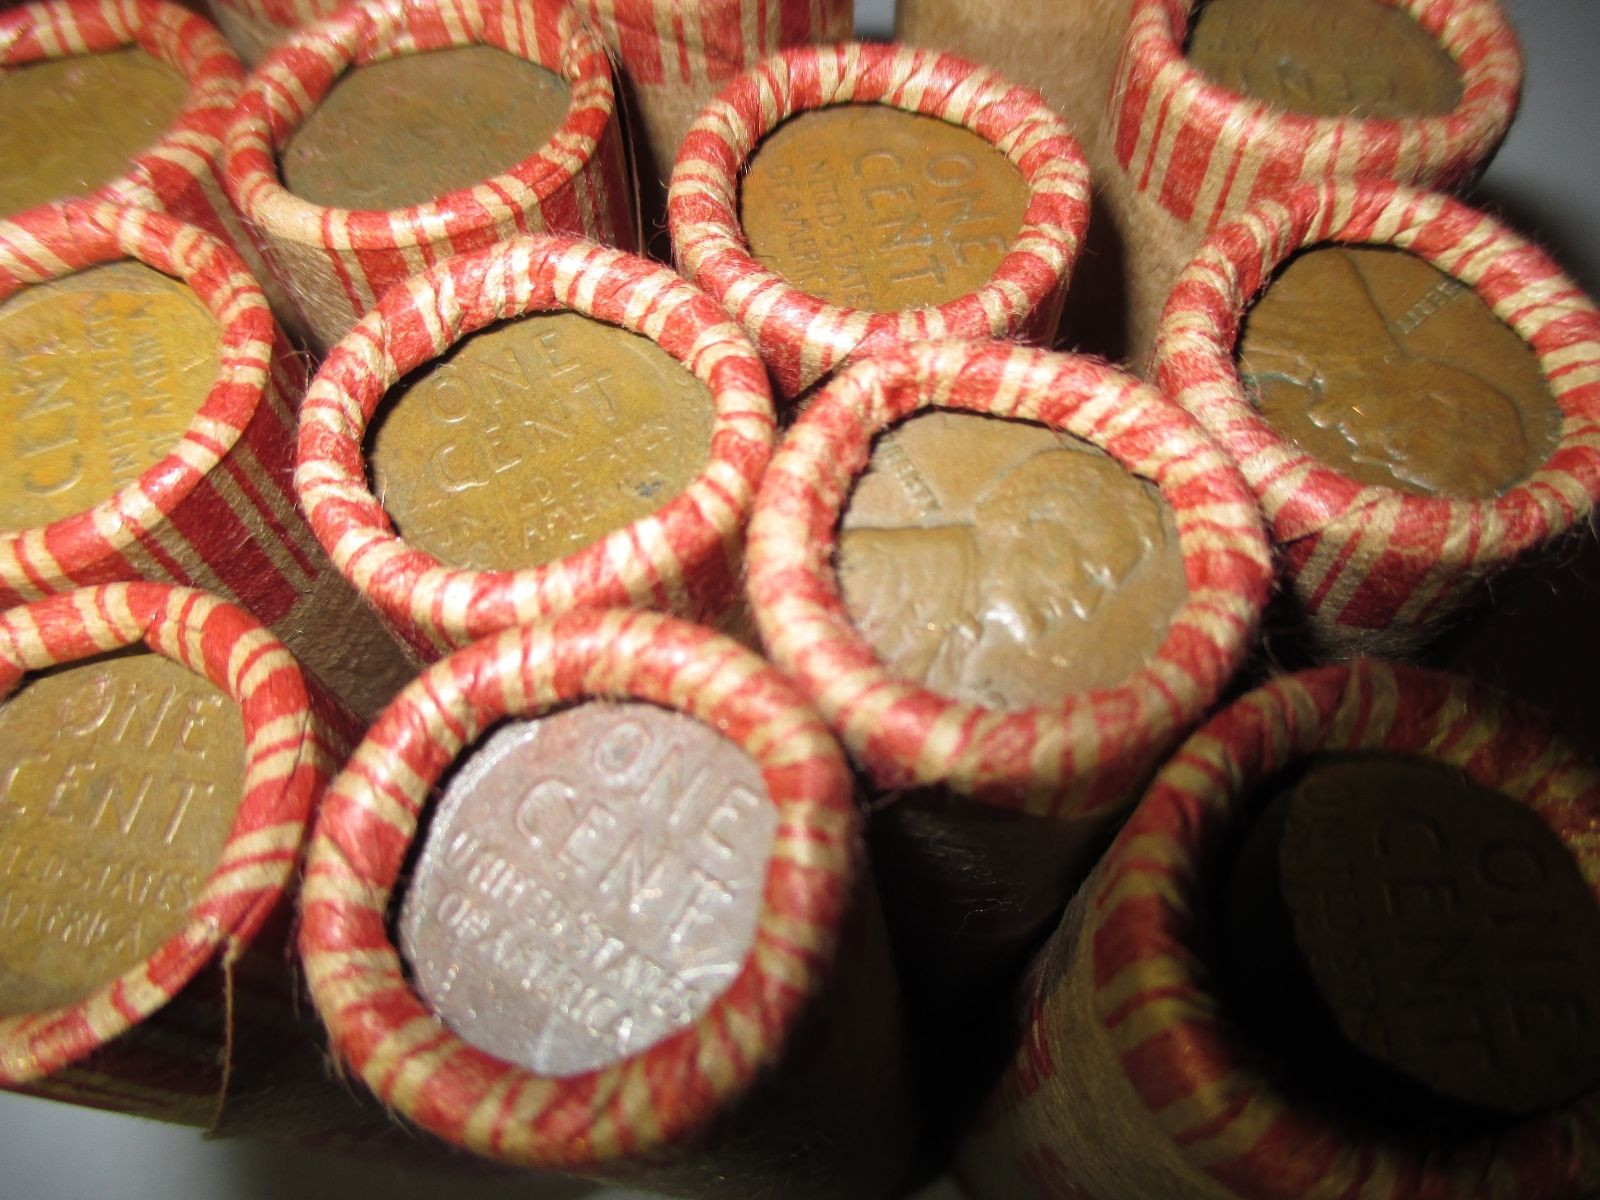 Best Of Unsearched Wheat Penny Shotgun Roll Wheat Cent Lot 1909 Wheat Penny Rolls Of Awesome 43 Photos Wheat Penny Rolls